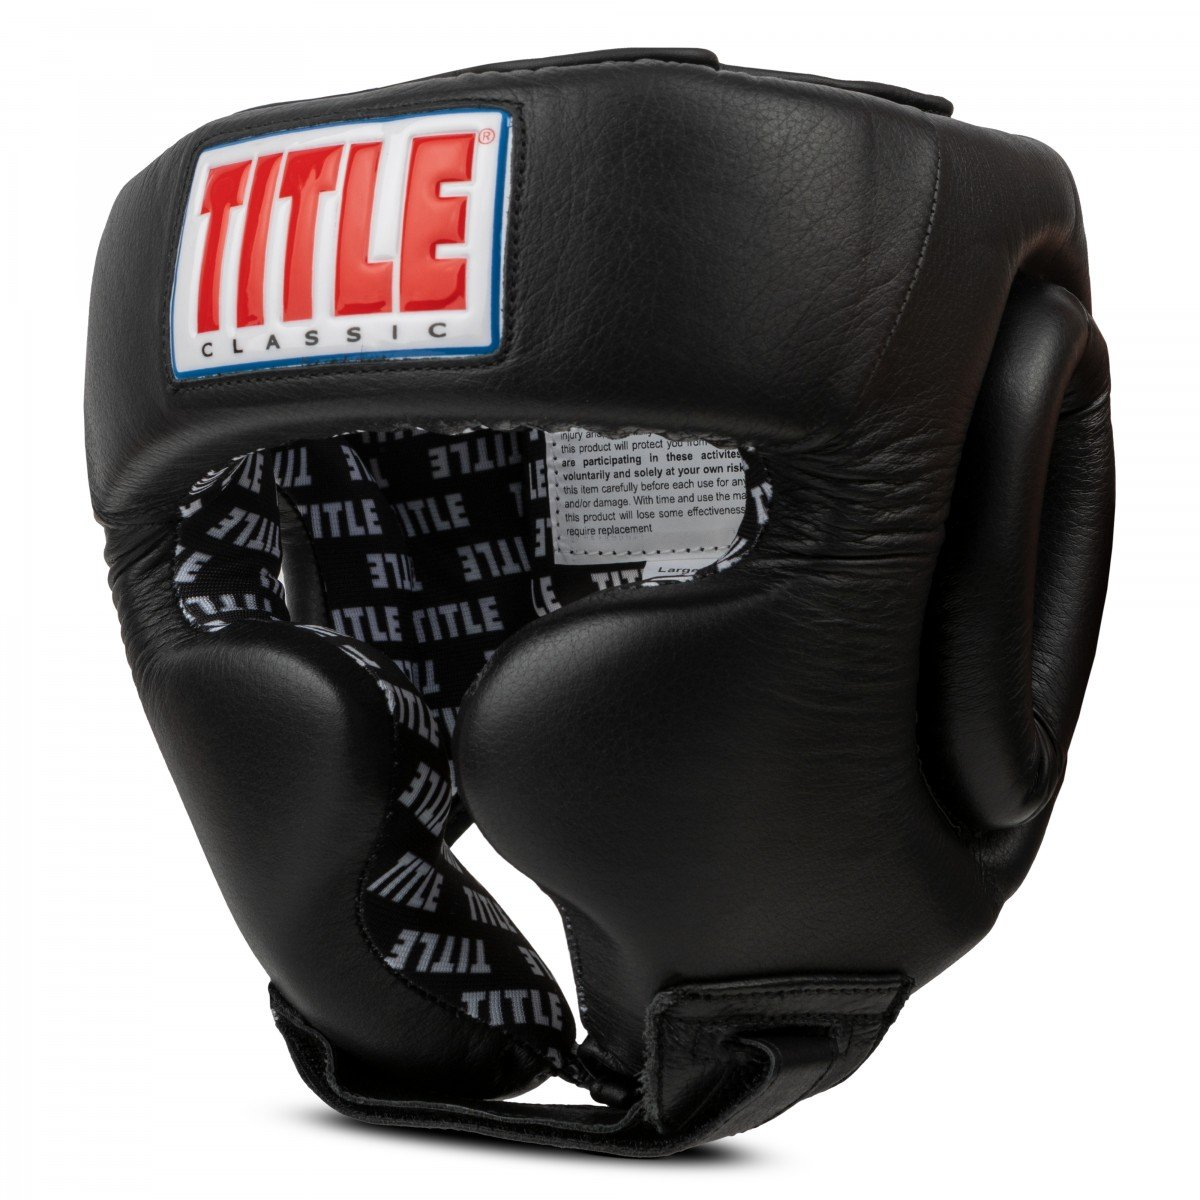 Title Boxing Classic Traditional Training Headgear 2.0, Black, Regular by Title Boxing